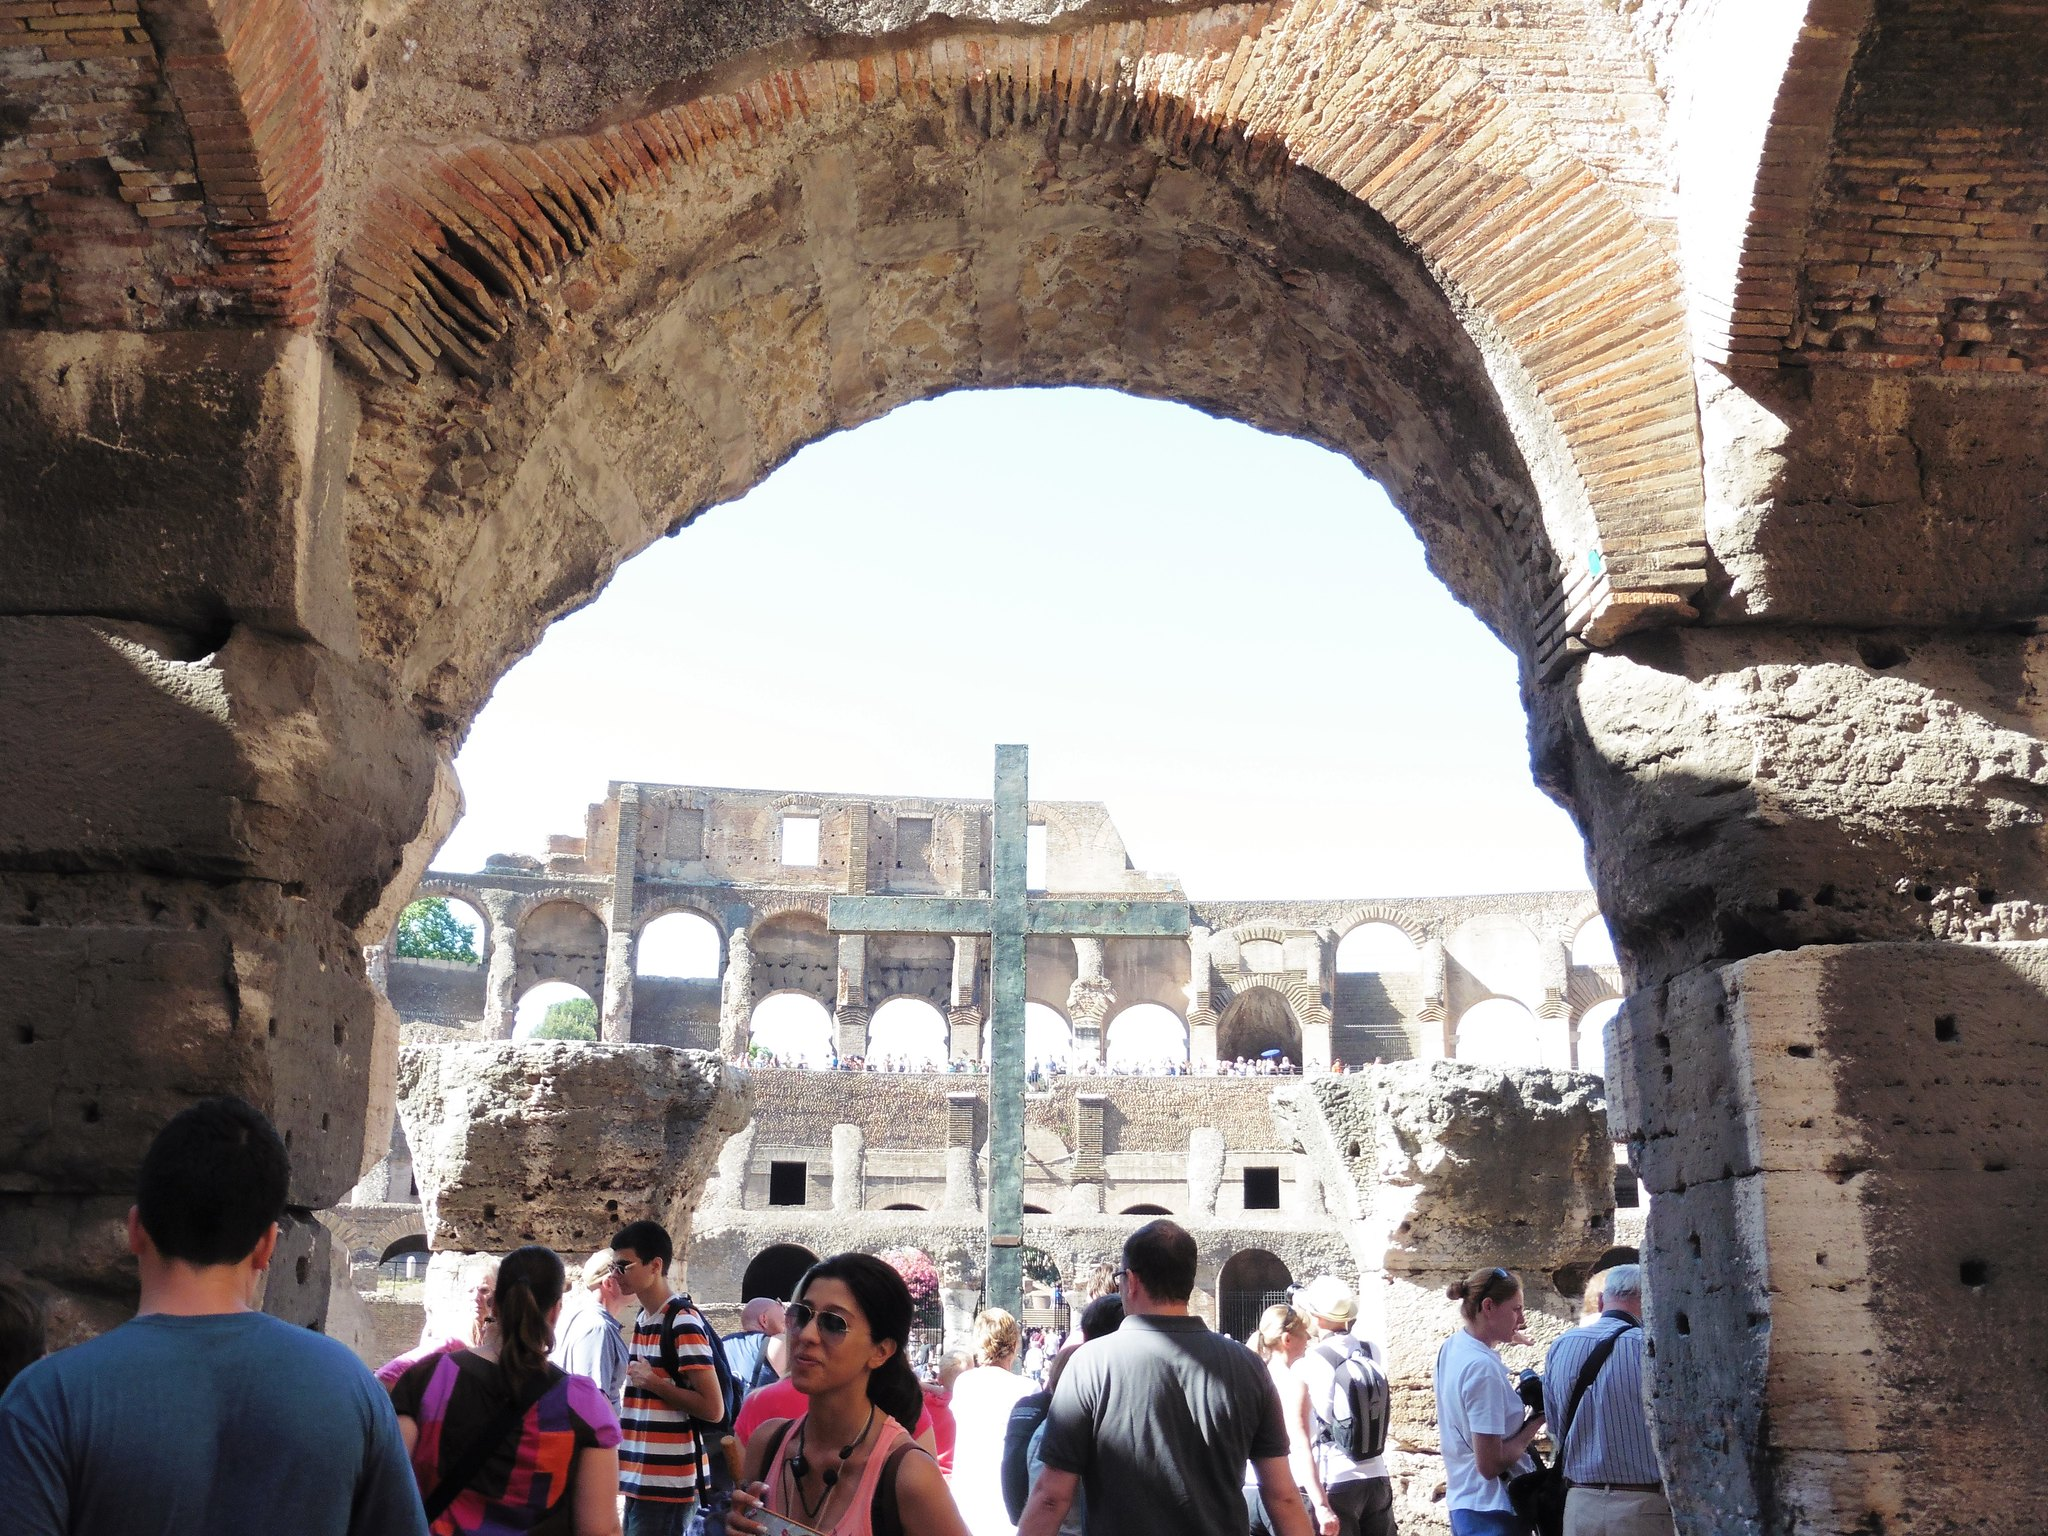 Cross in Roman Colosseum